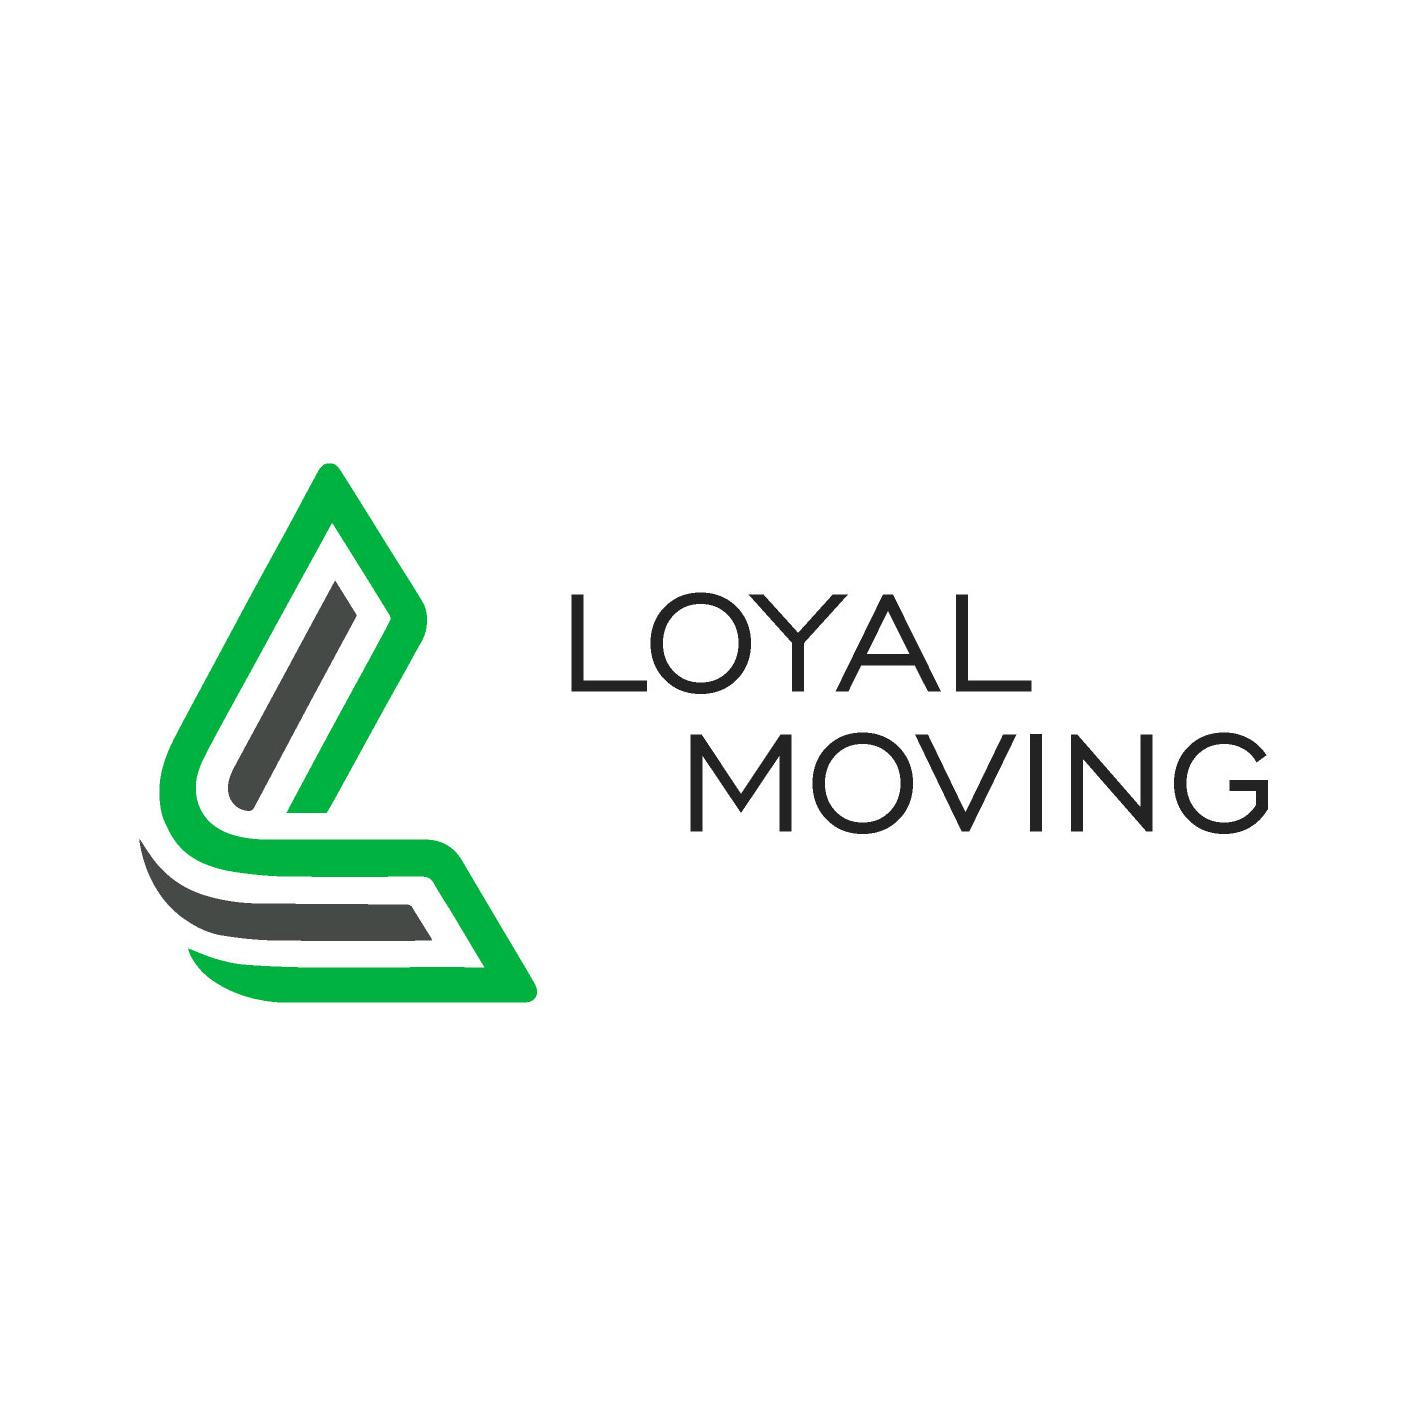 Loyal Moving Company